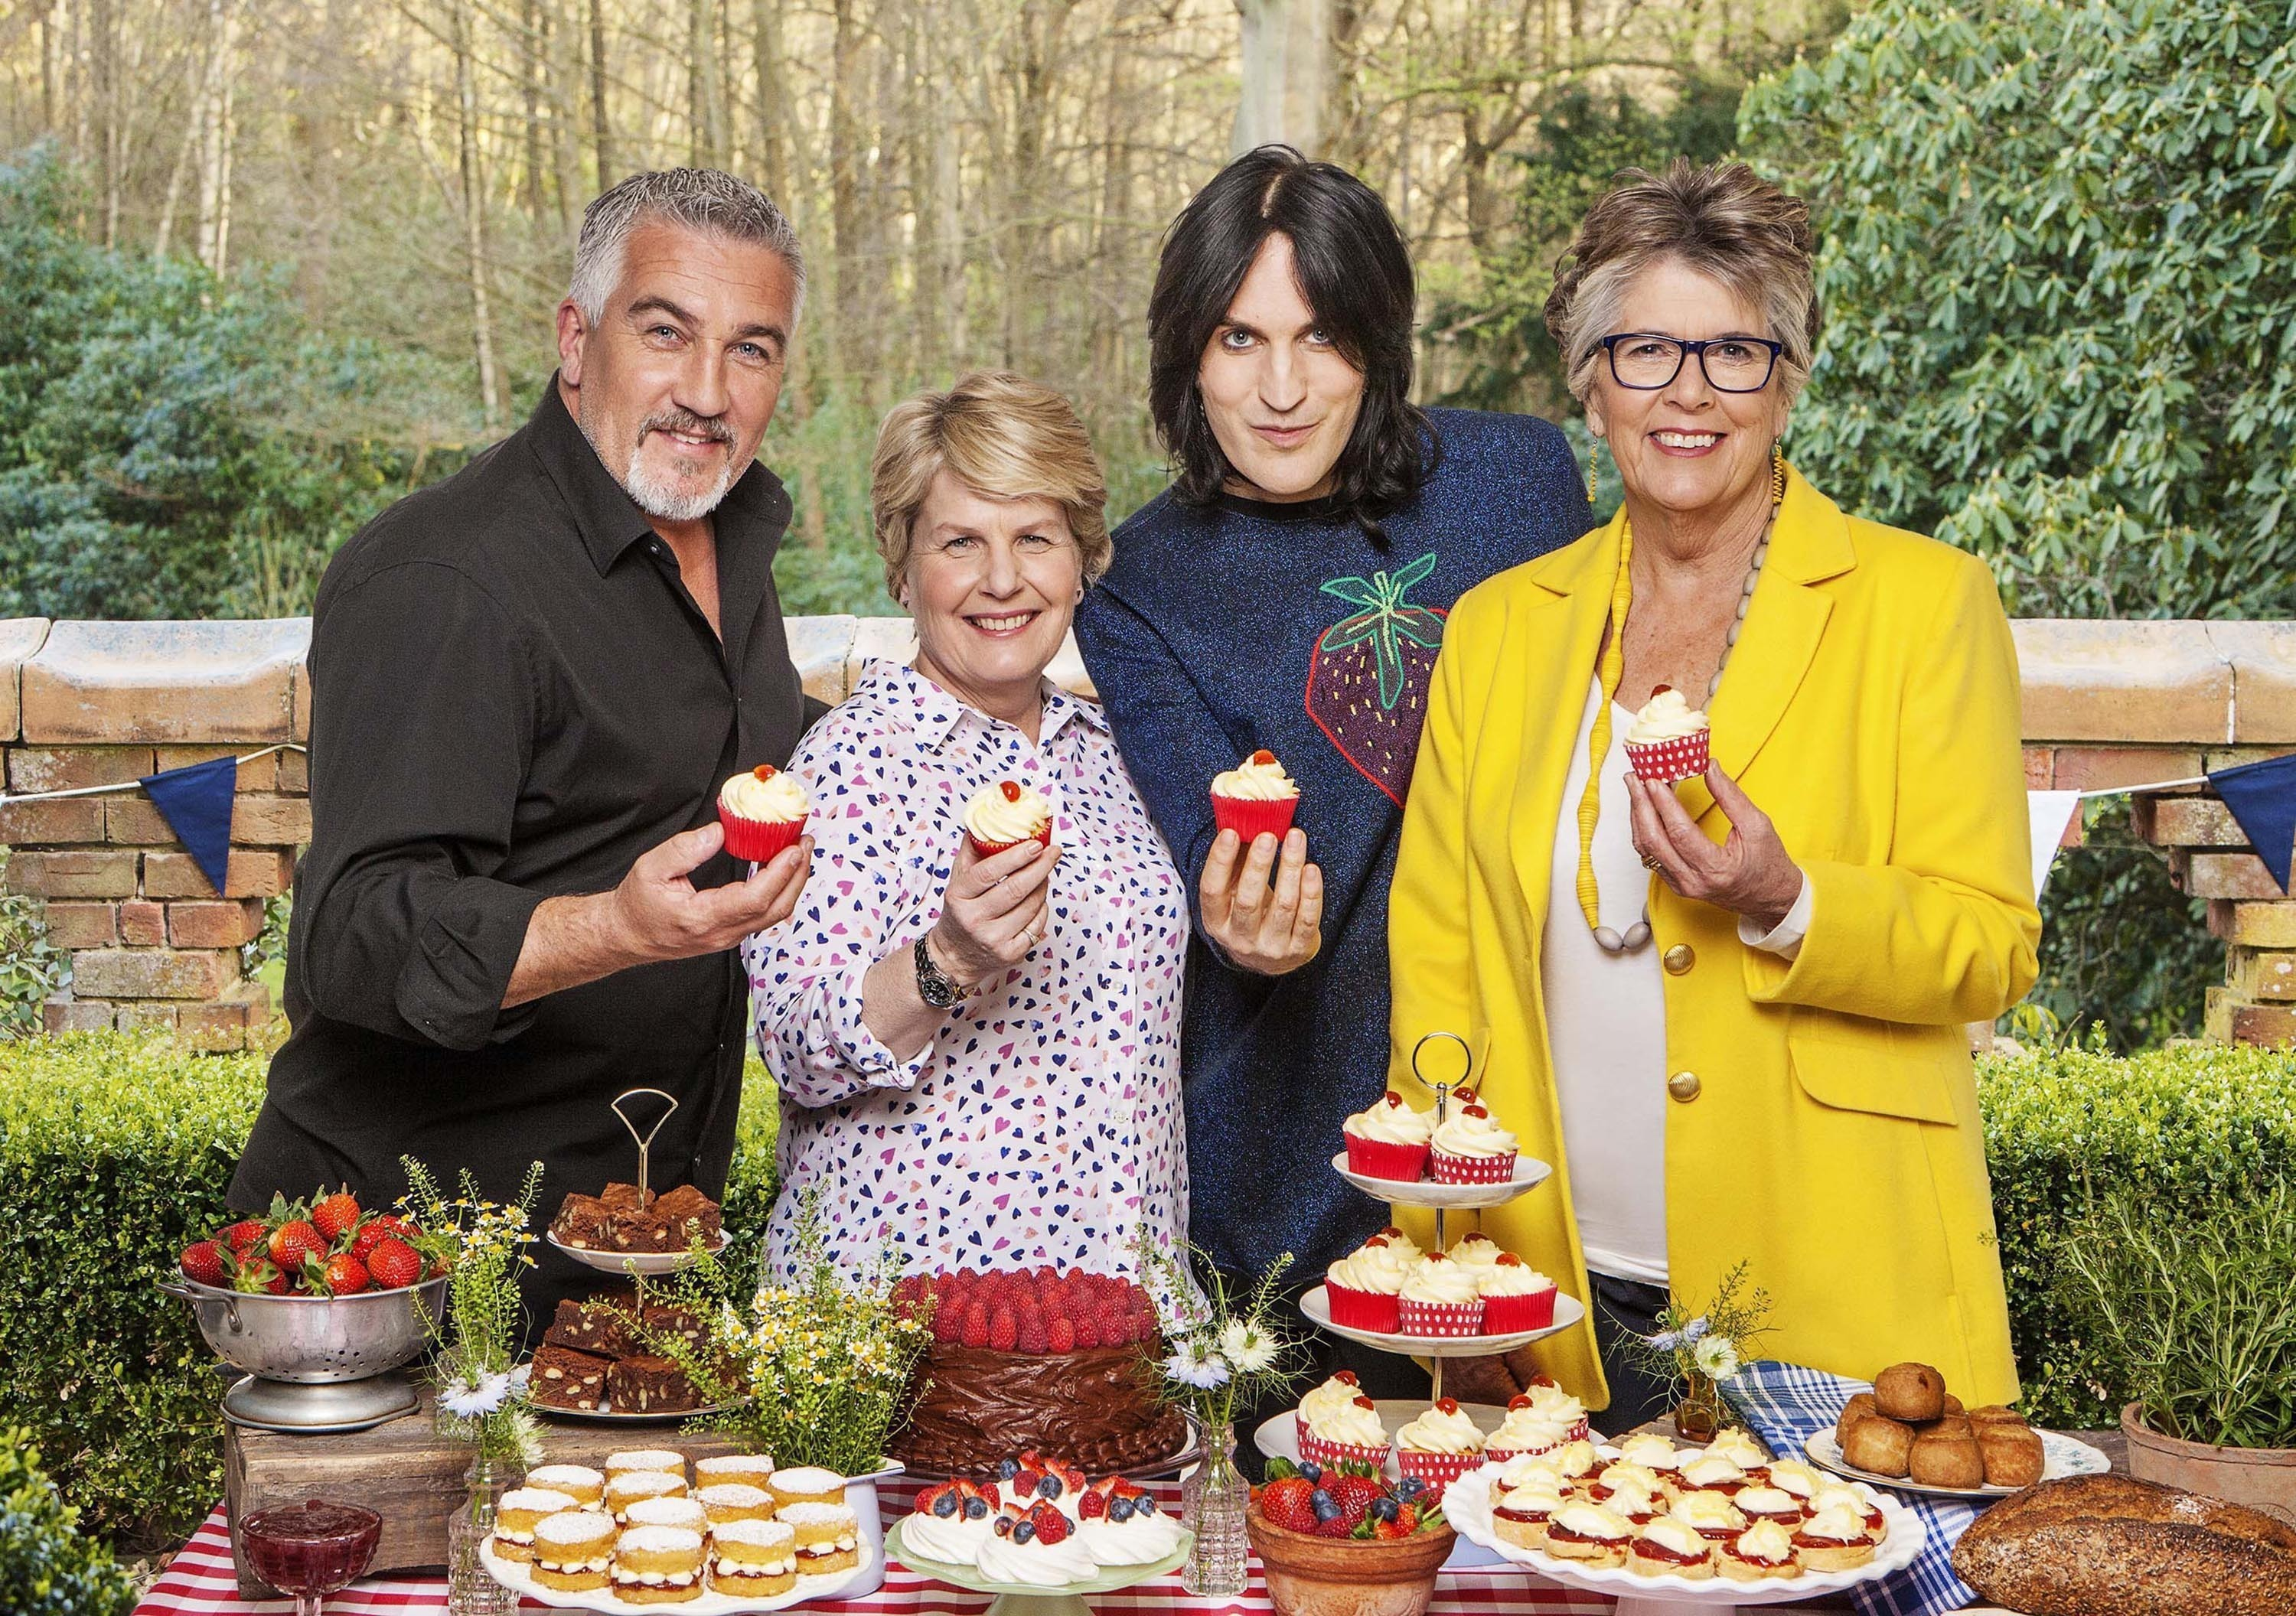 The judges and presenters for The Great British Bake Off (left to right) Paul Hollywood, Sandi Toksvig, Noel Fielding and Prue Leith ( Love Productions/Channel 4/Mark Bourdillon/PA Wire)